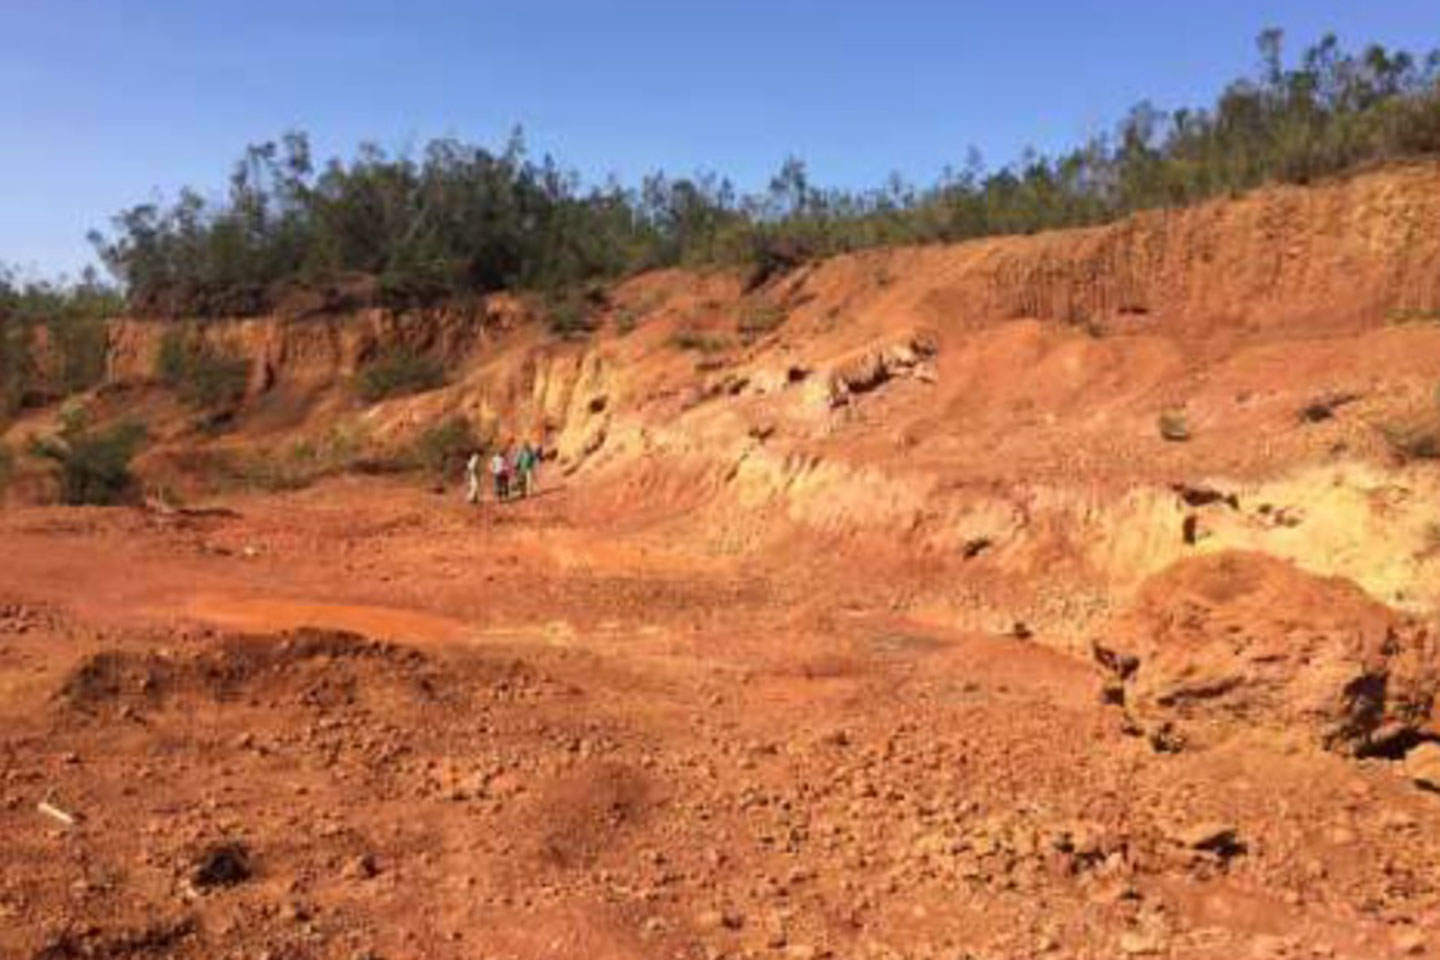 bauxite project Project will secure high-quality bauxite supply for ega, generate new revenue through exports.